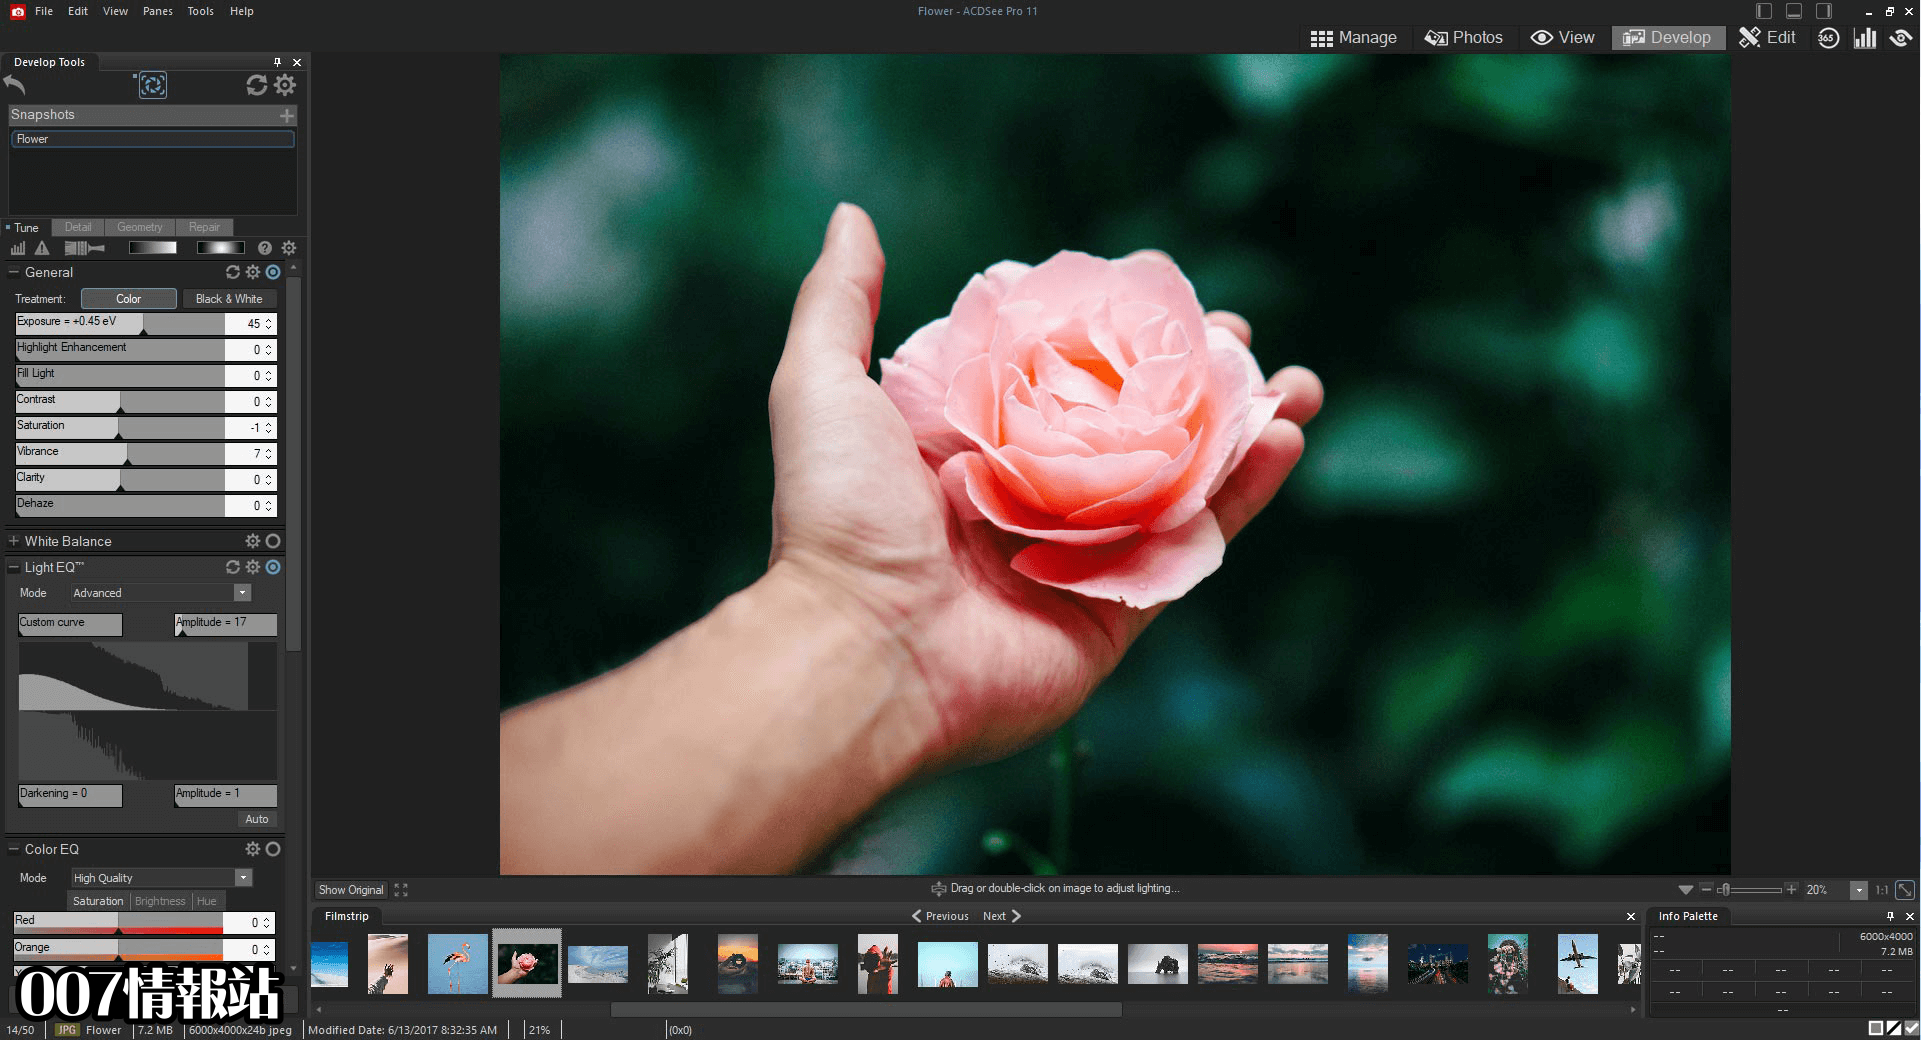 ACDSee Photo Studio Professional (32-bit) Screenshot 2